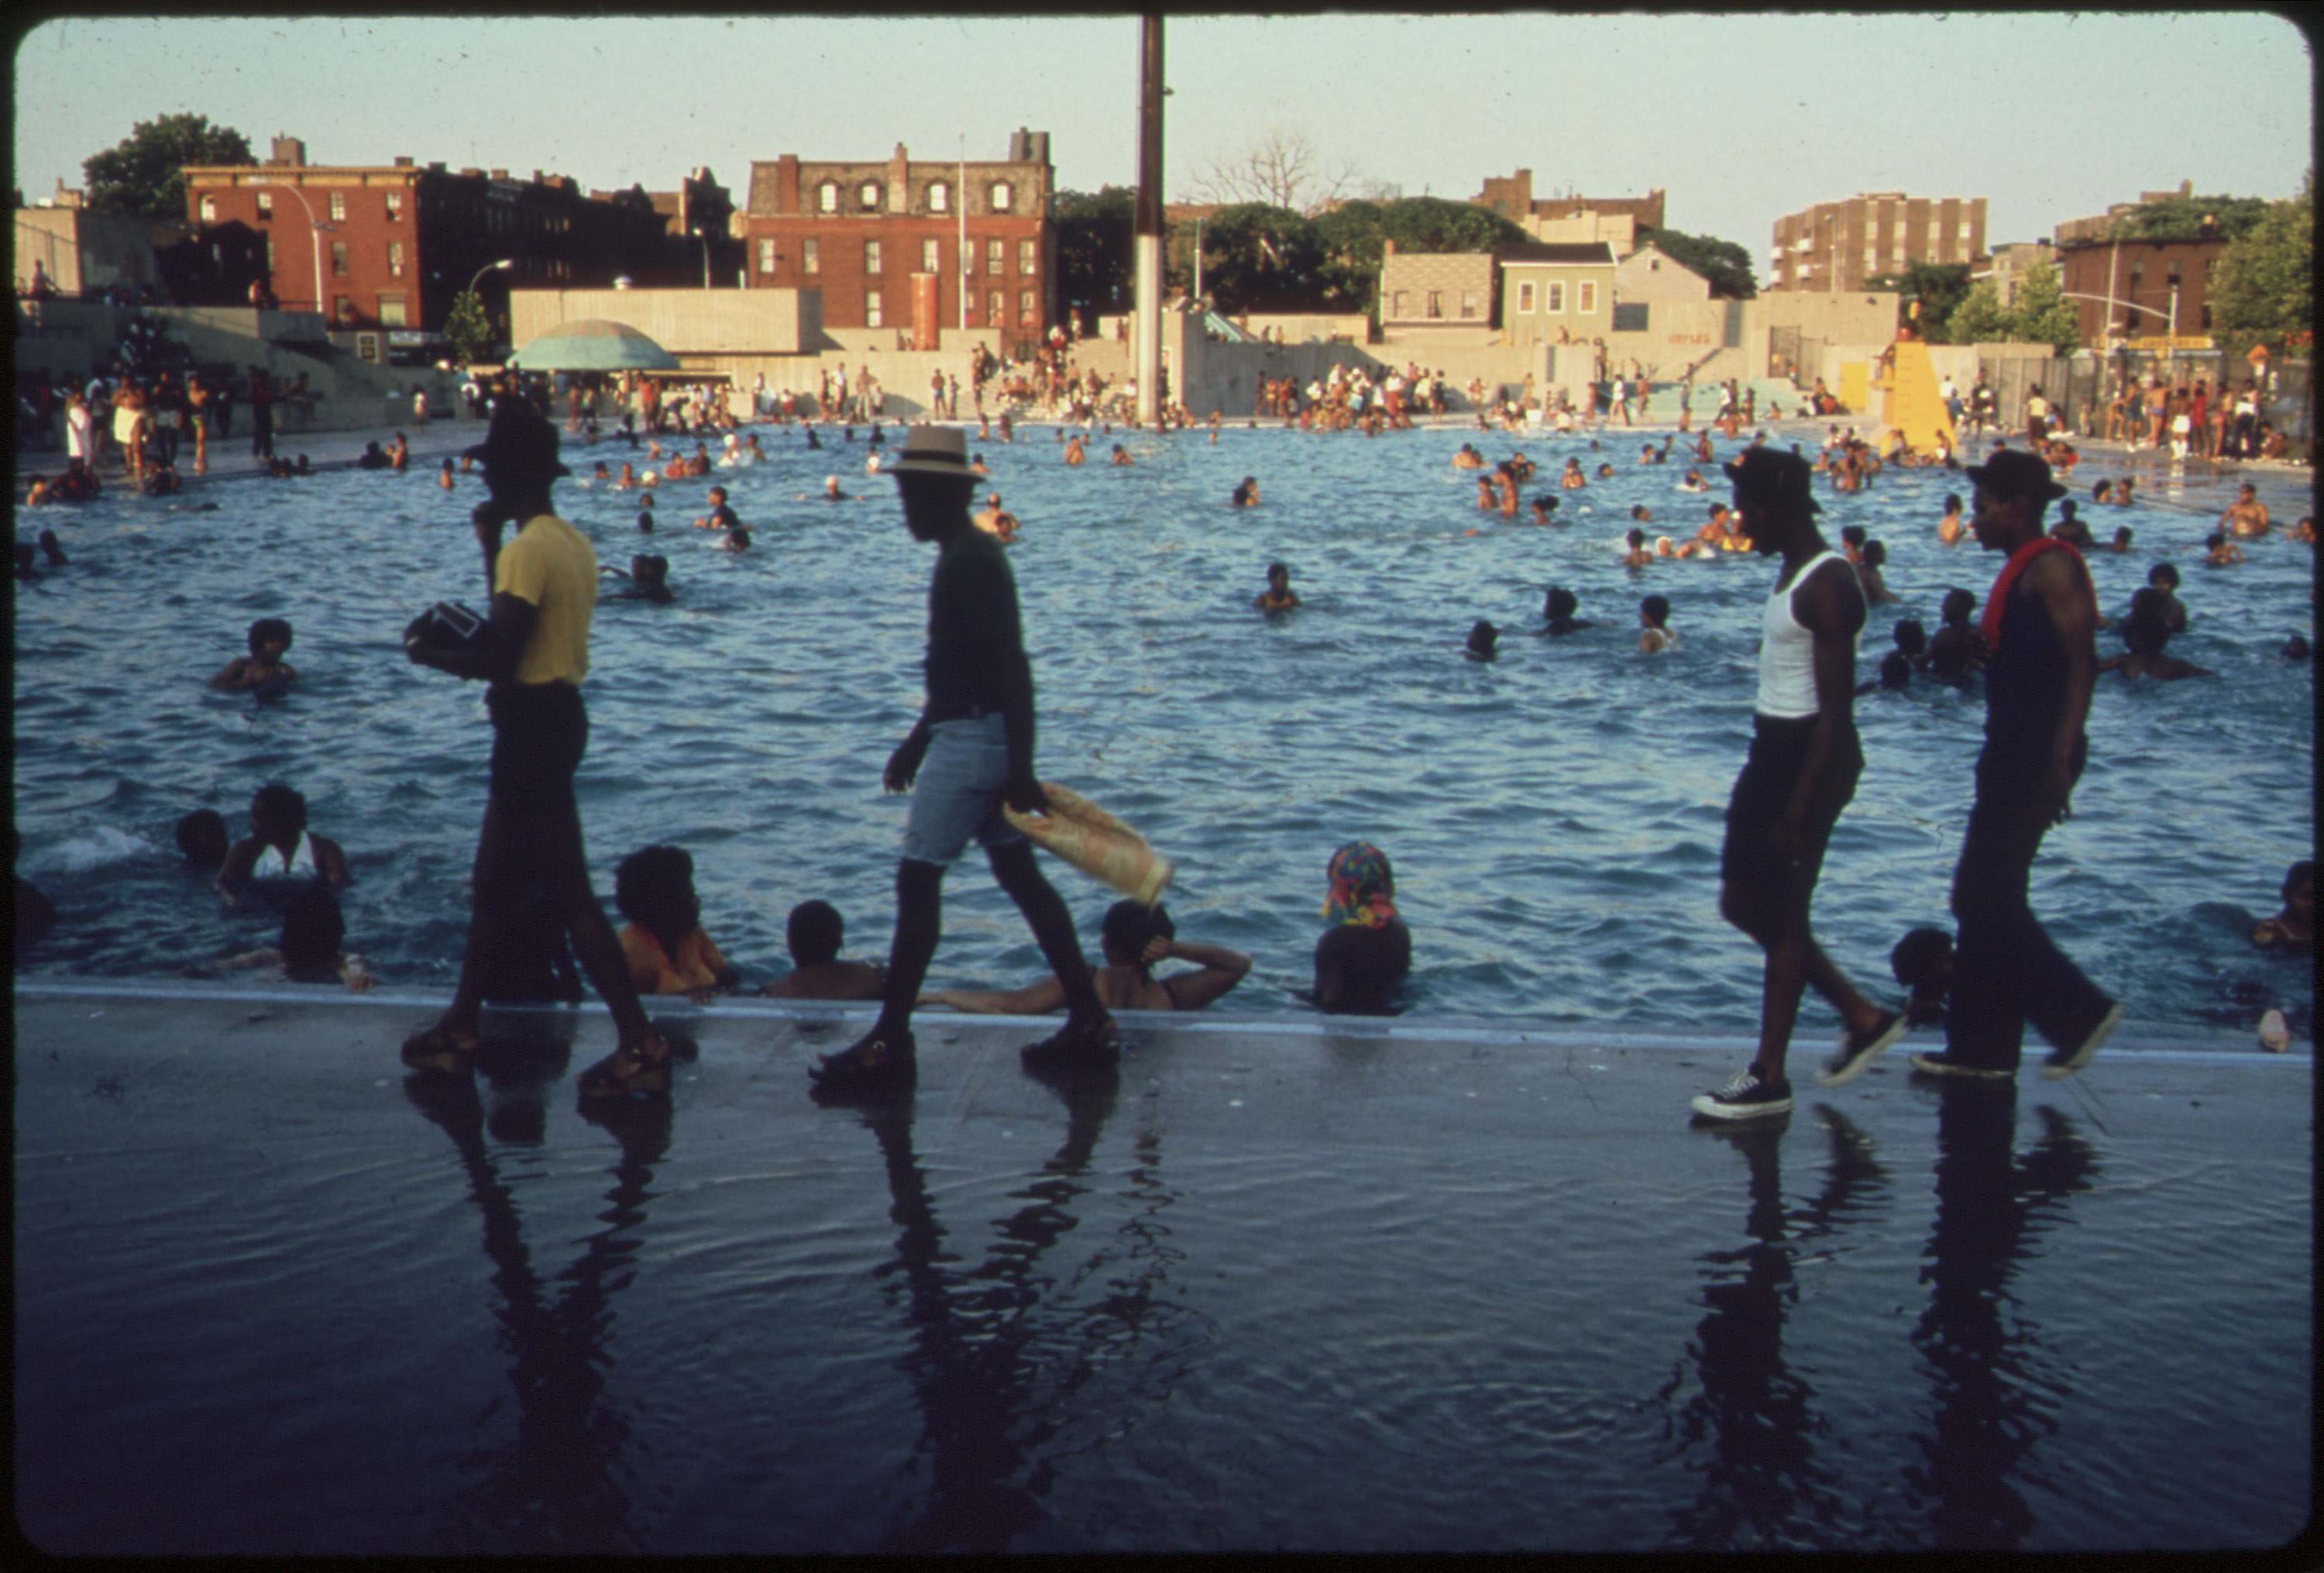 The Kosciusko public swimming pool, Bedford-Stuyvesant district of Brooklyn, July 1974. Documerica: Danny Lyon's Photos of New York City in the Summer of 1974